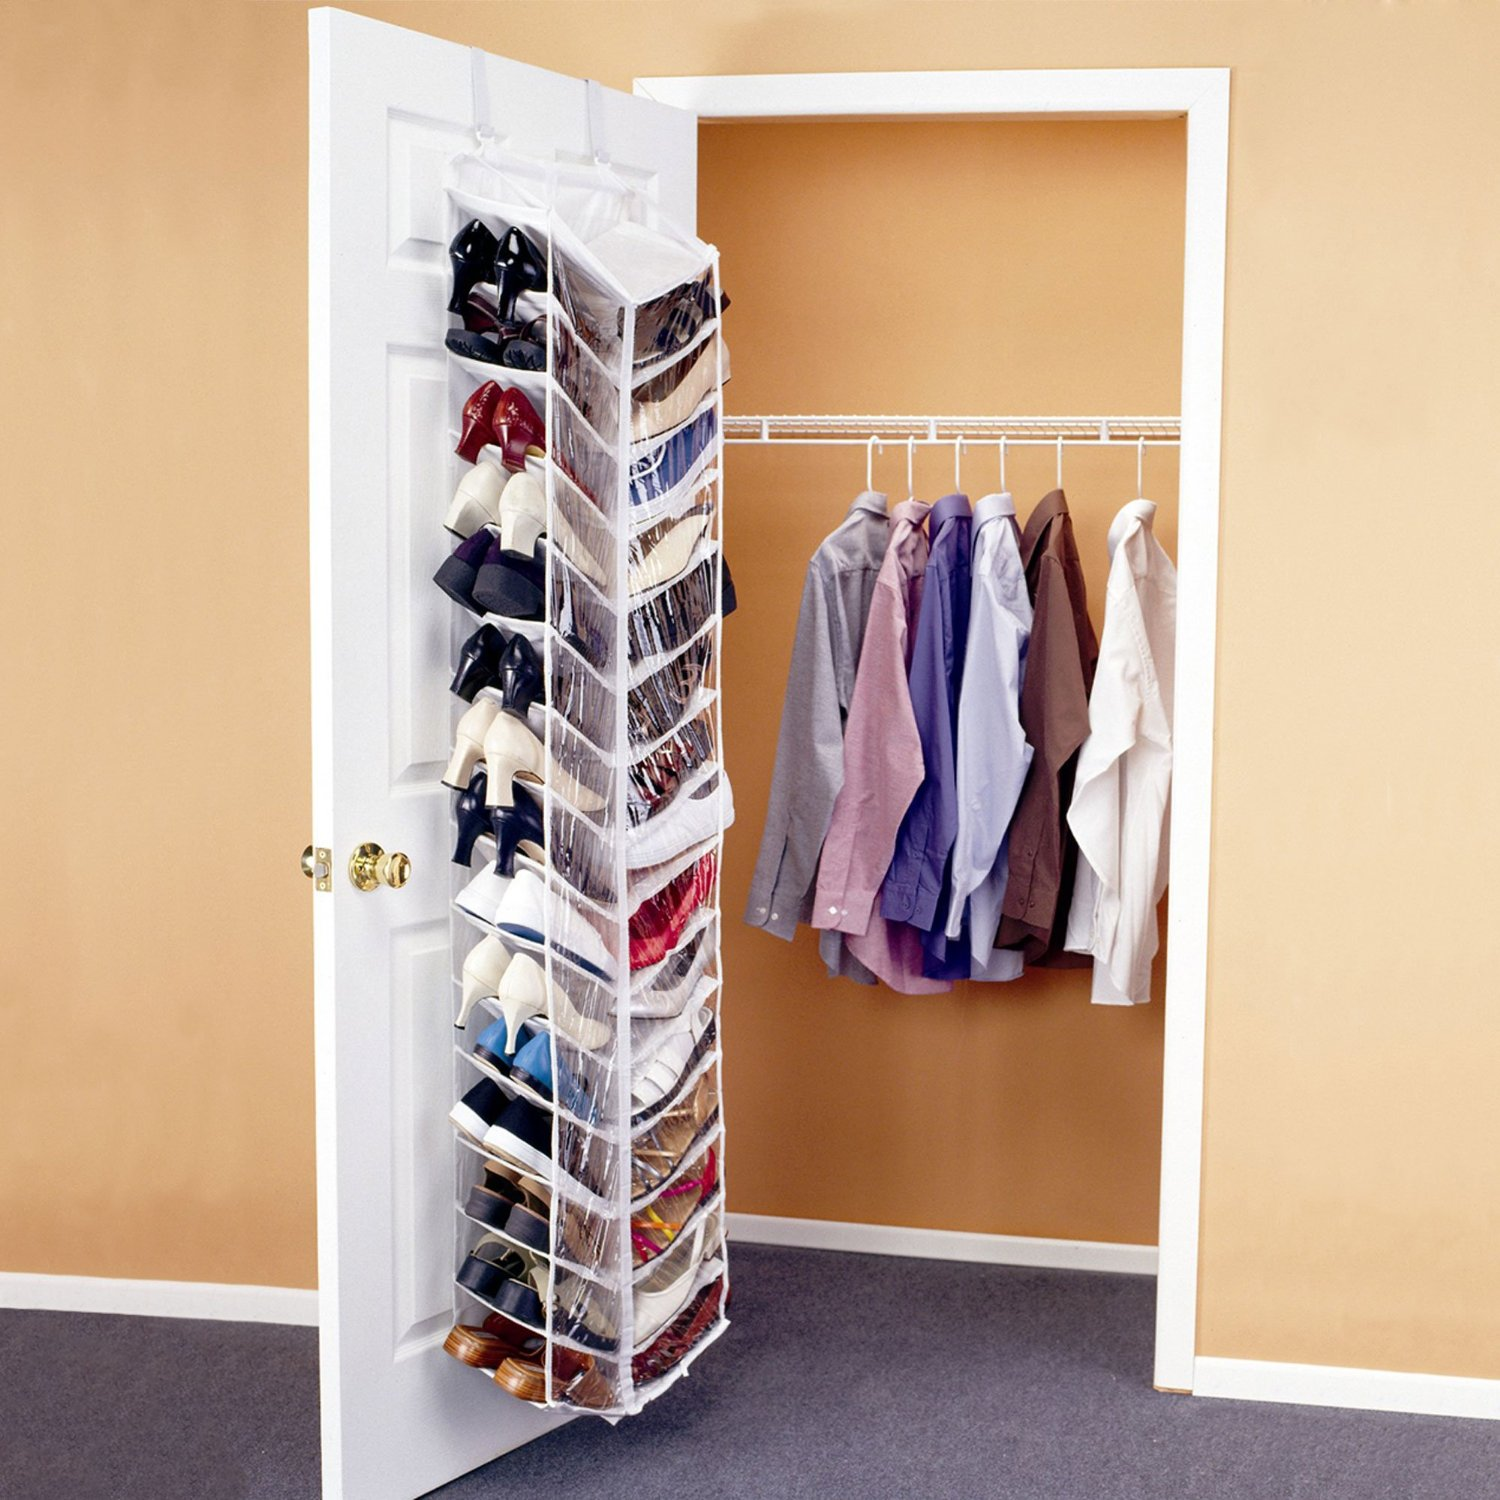 Step #1: Hang The Sweater Organizer In The Closet, Or On A Door.